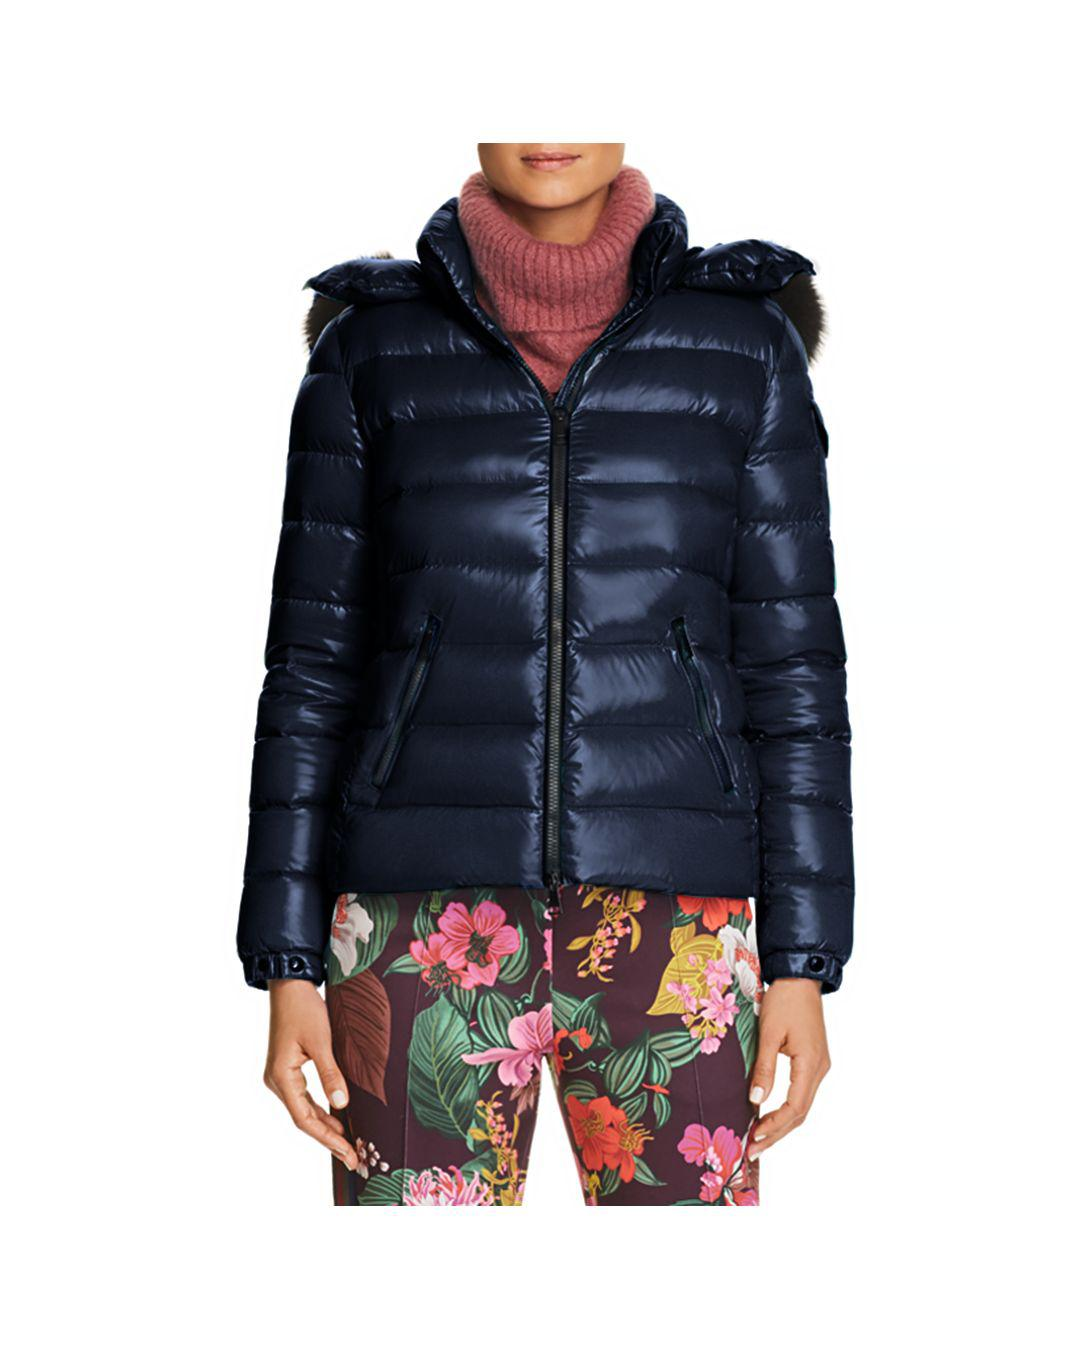 98c78e961 Lyst - Moncler Bady Fur Jacket in Blue